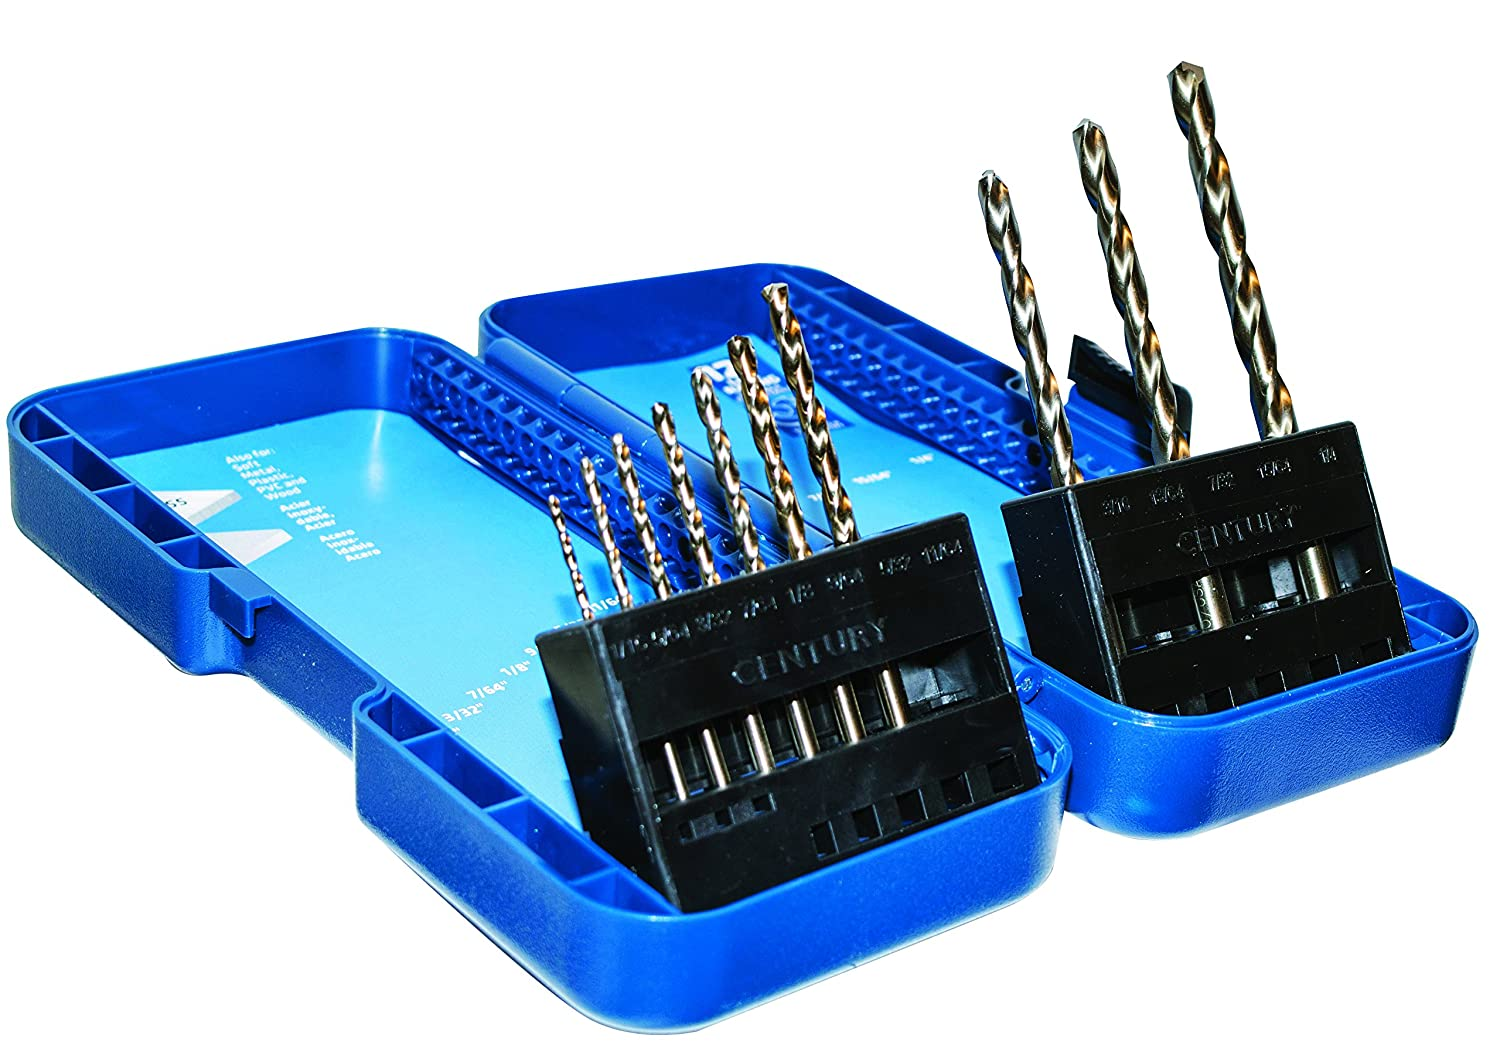 Century Drill and Tool 26310 Cobalt High Speed Steel Drill Bit Set, 10 Piece